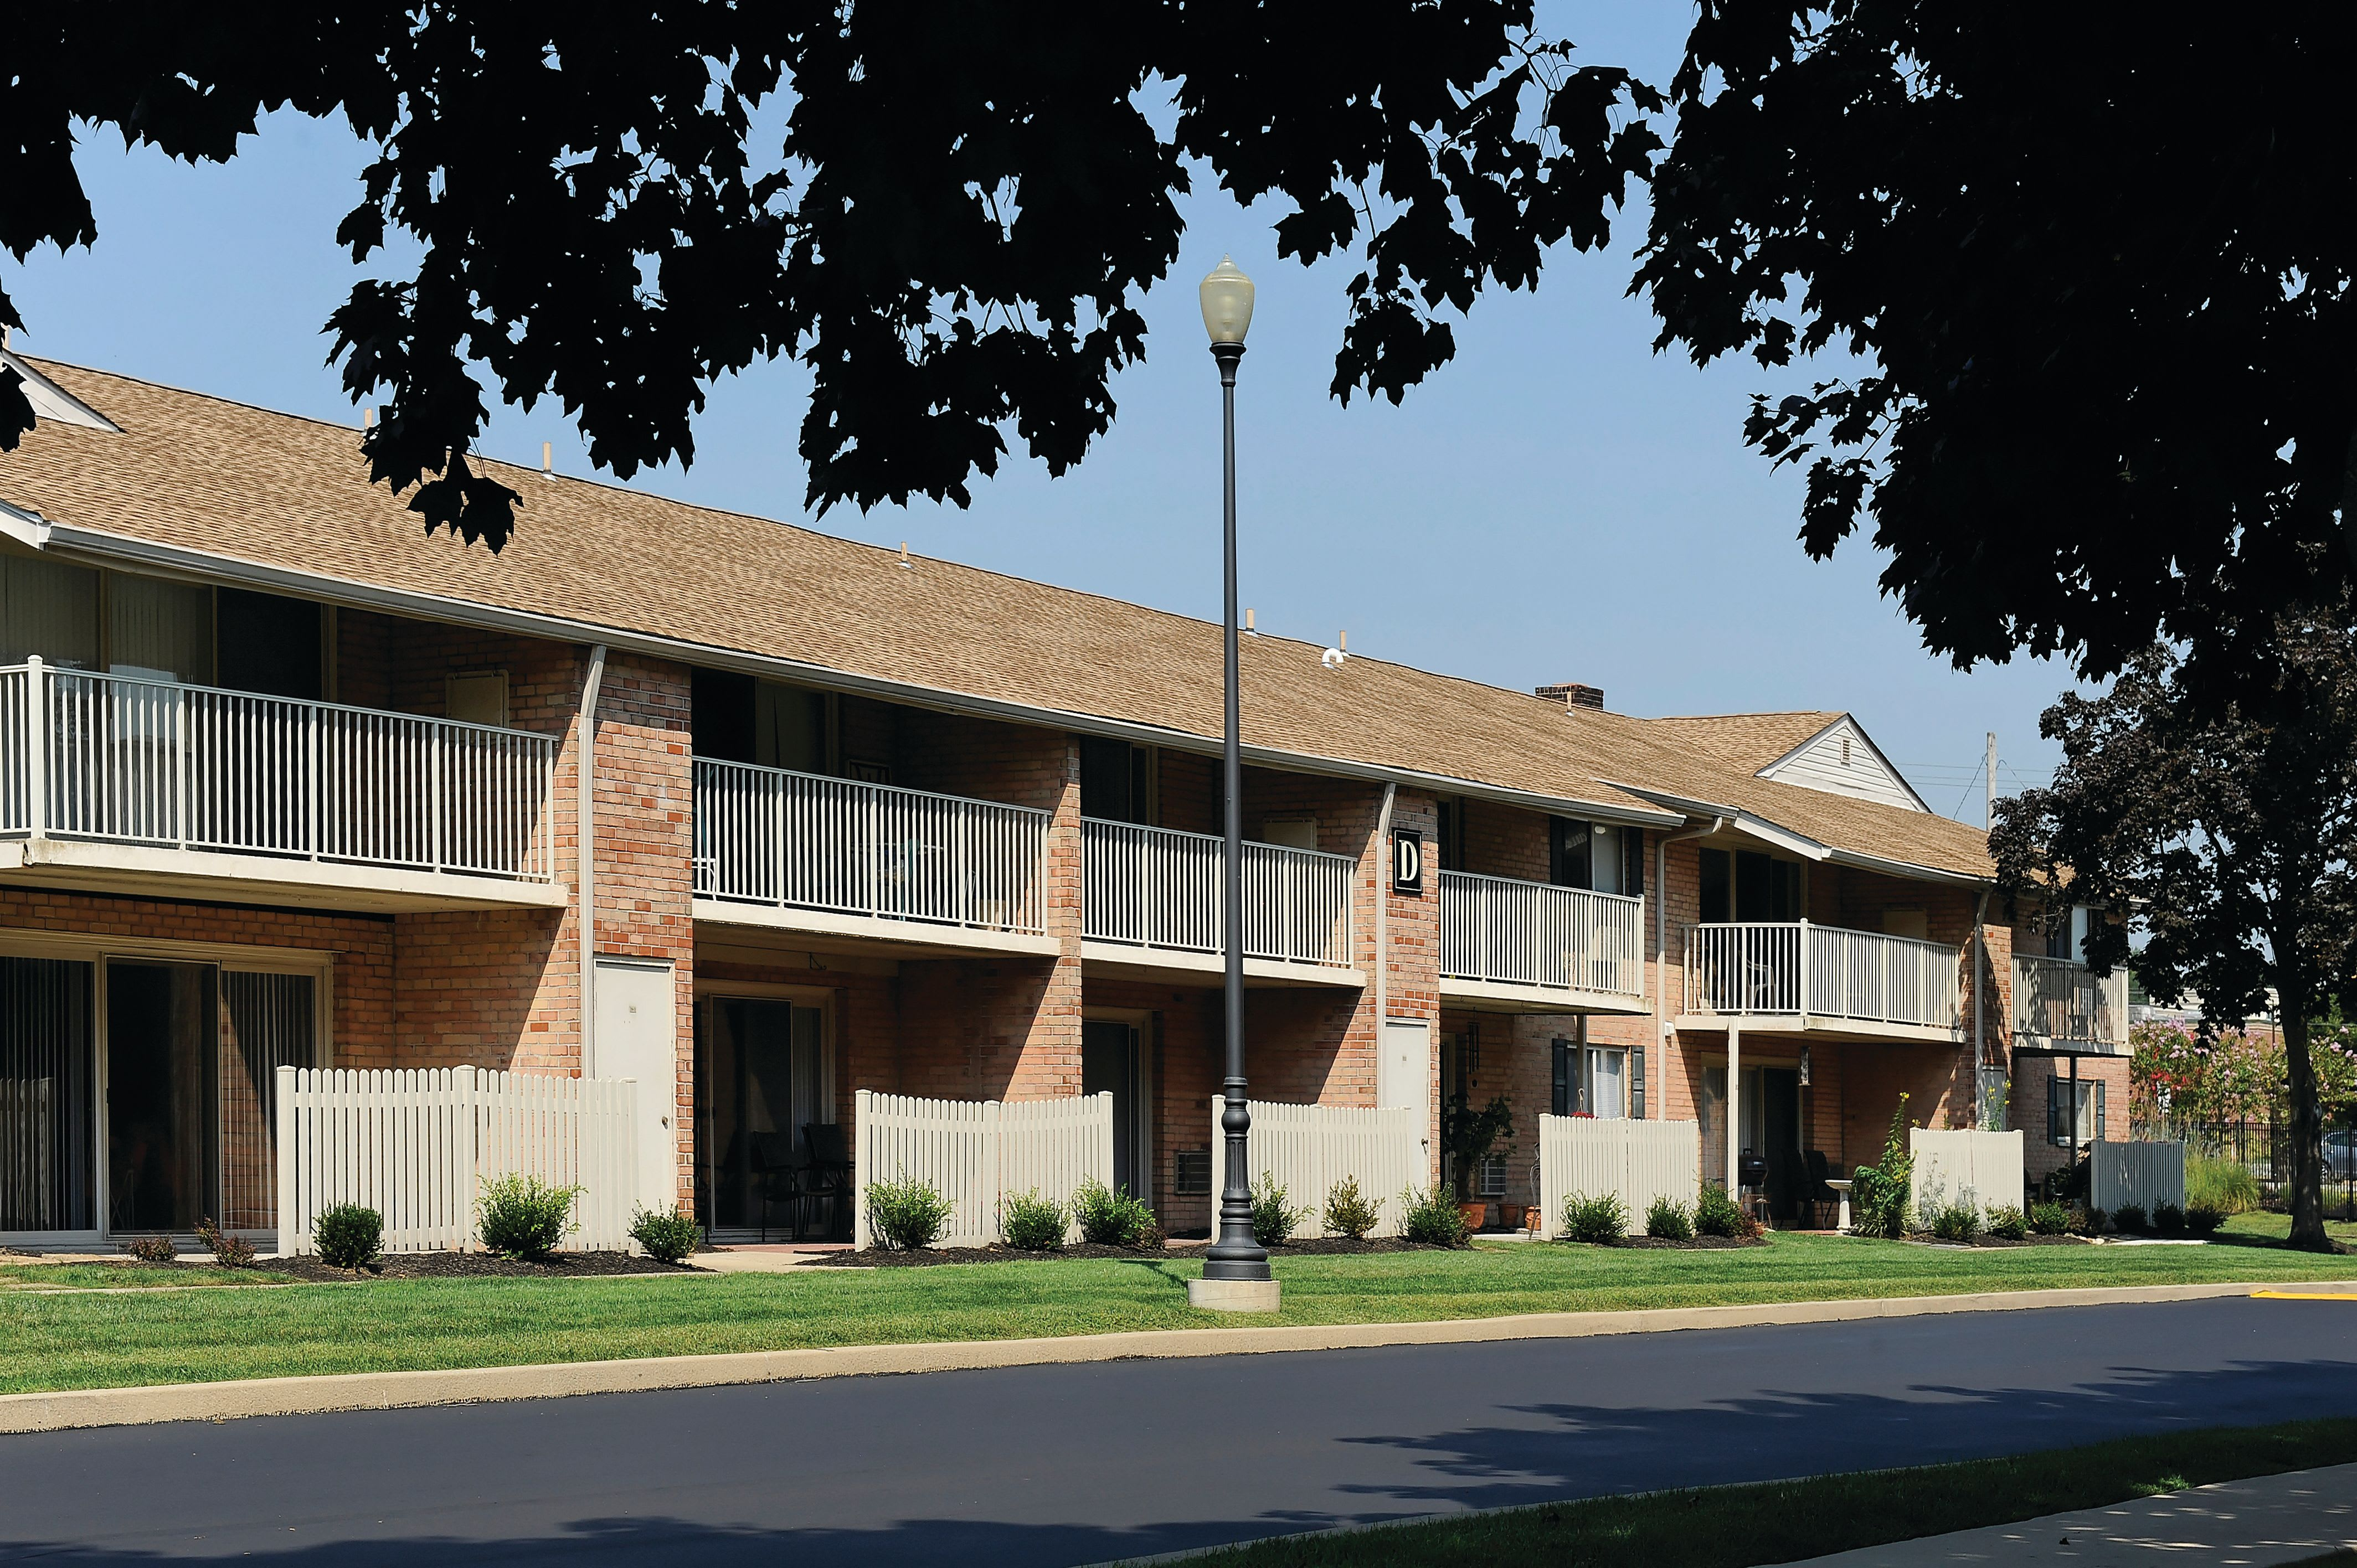 View of apartments with the first floor patio and second floor balconies at Golf Club Apartments in West Chester, Pennsylvania